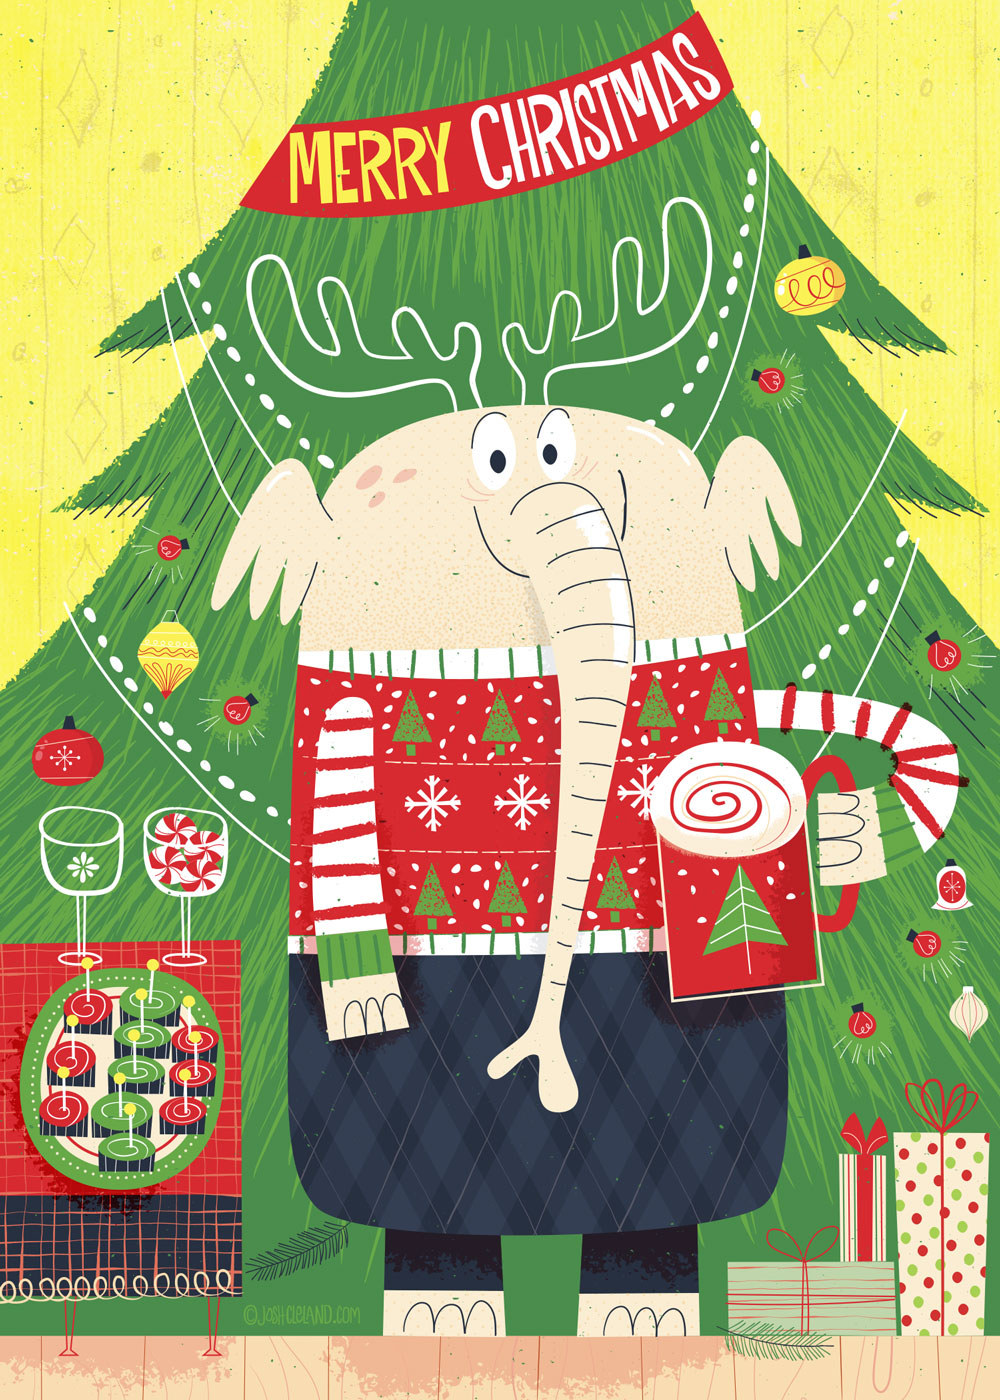 Larry the Christmas elephant by Josh Cleland